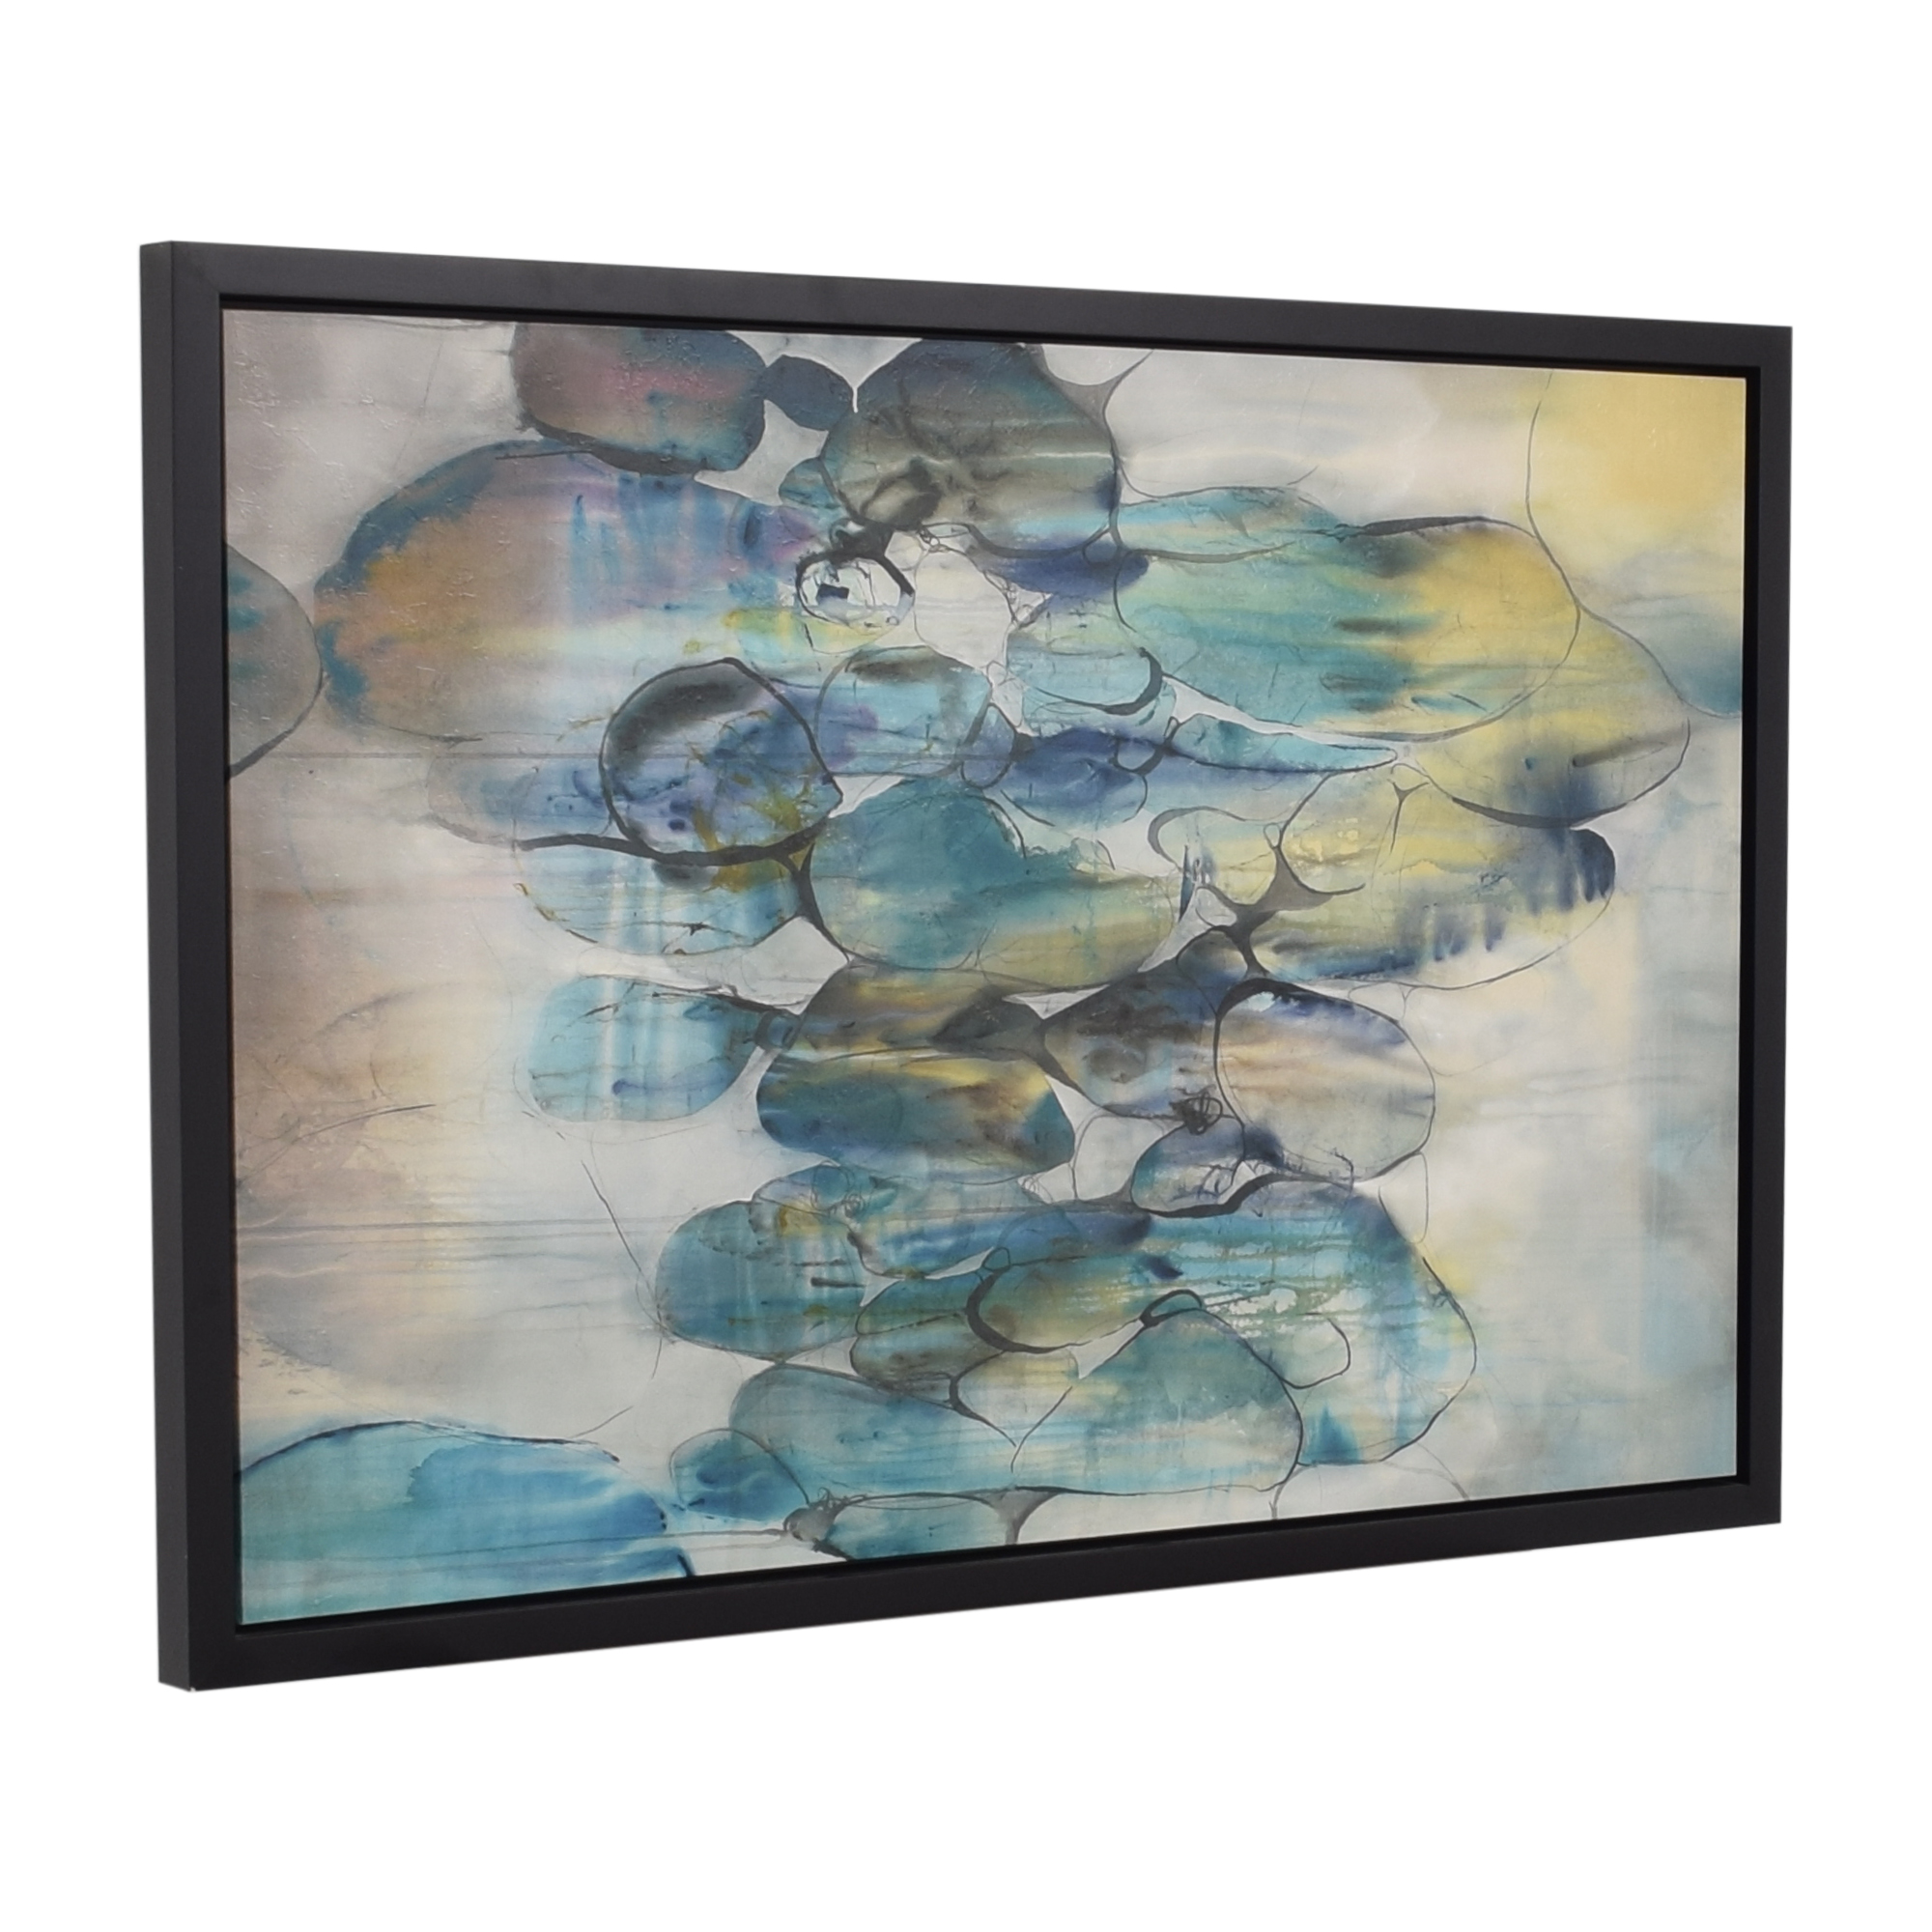 Crate & Barrel Crate & Barrel Turquoise Assemblage Print nyc